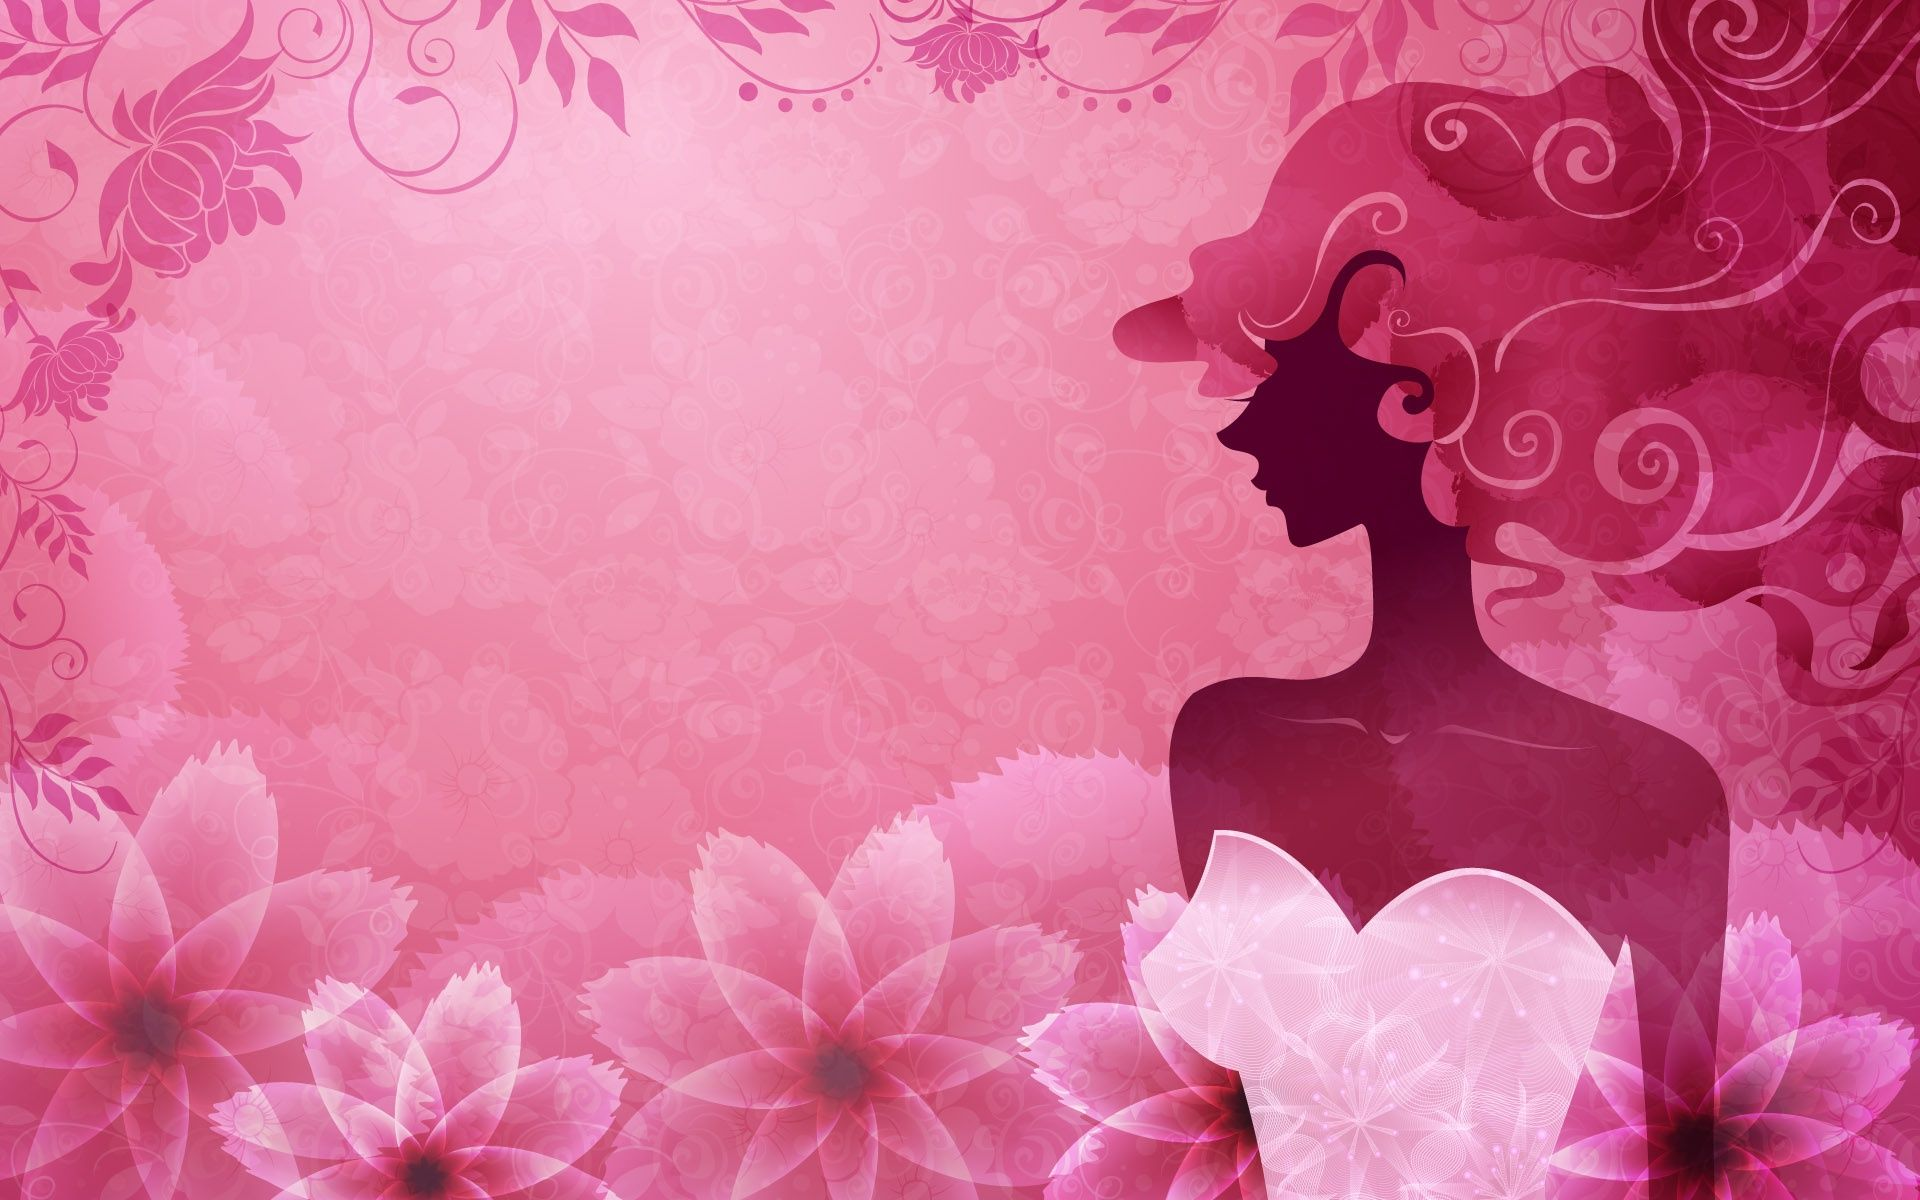 Pink Design Hdpicorner Cool Wallpapers For Girls Girl Iphone Wallpaper Cool Wallpaper